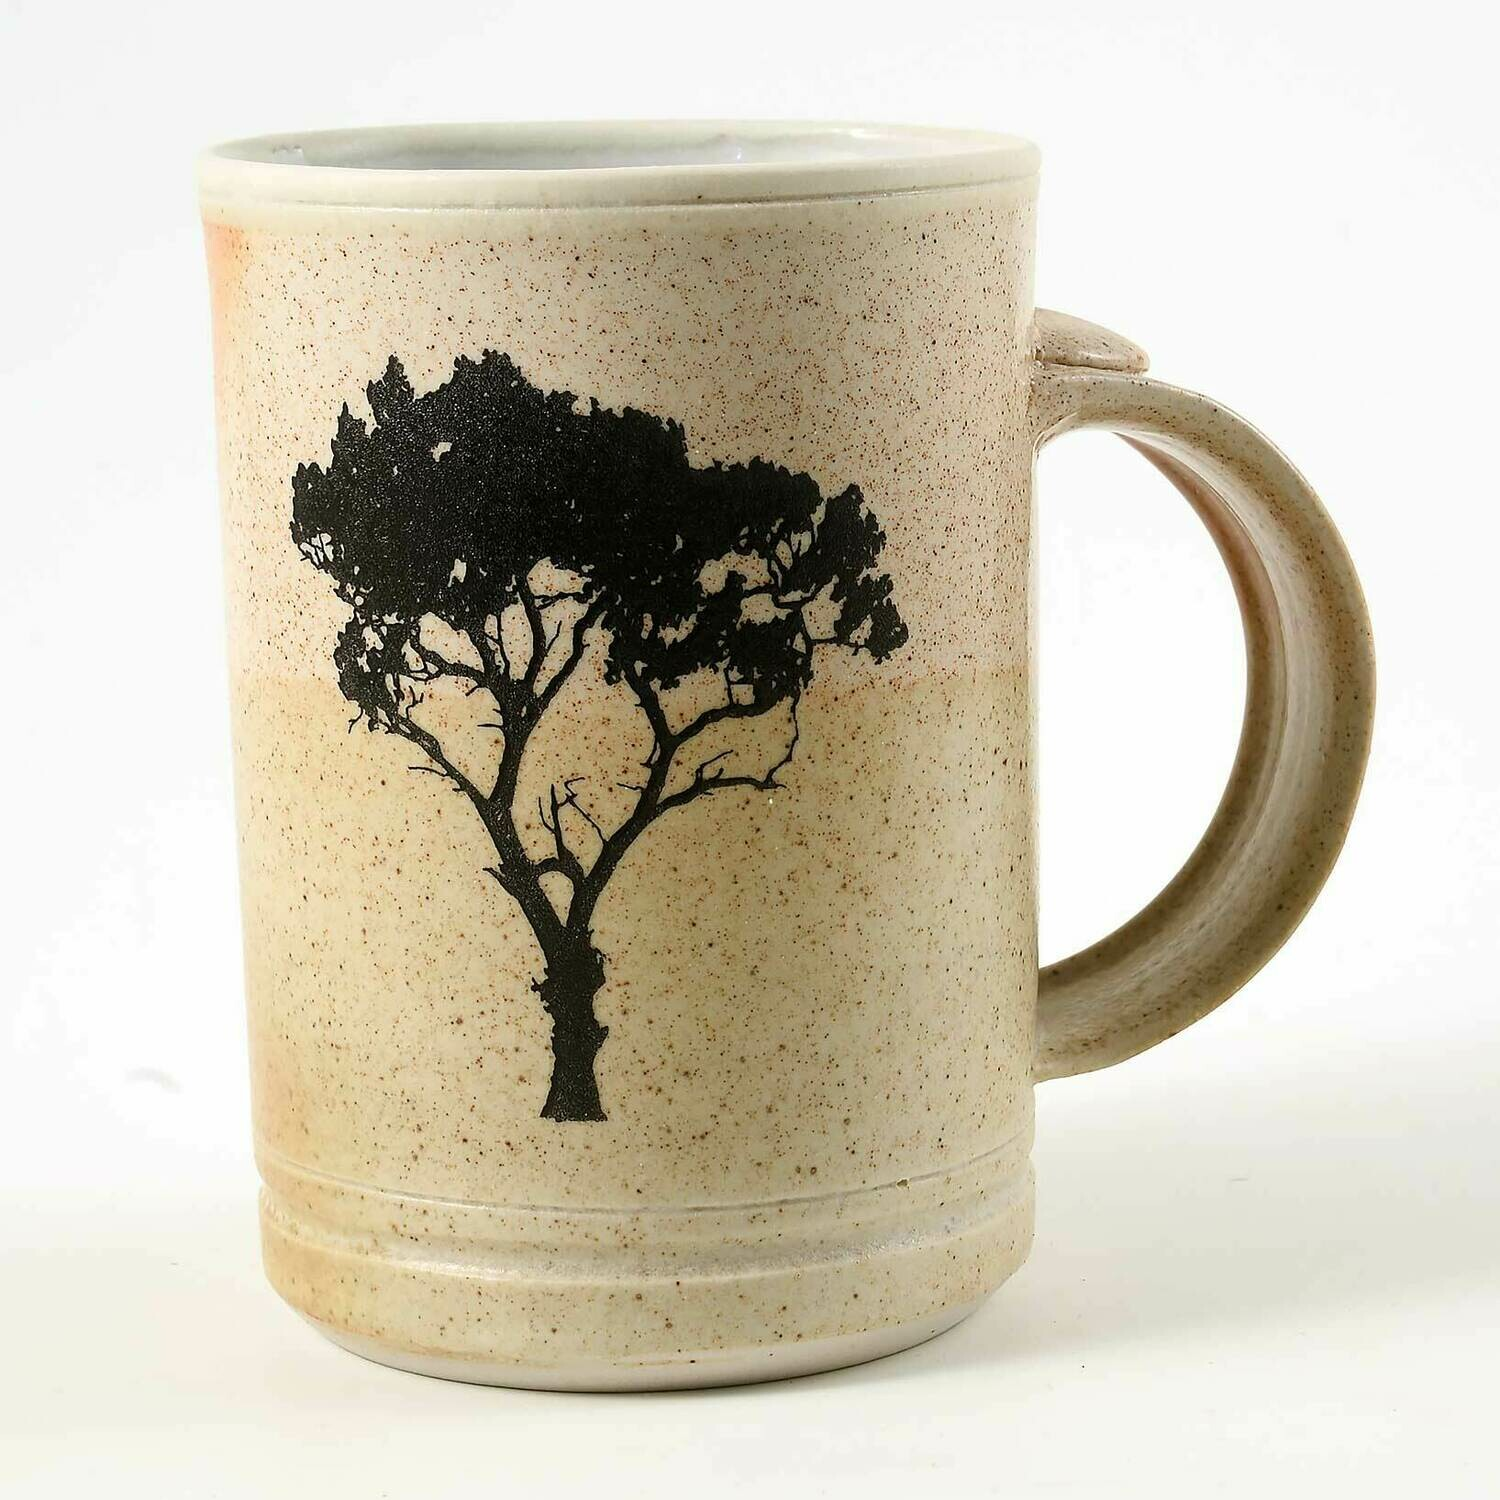 Mug - Tree silhouette fired into the glaze Porcelain